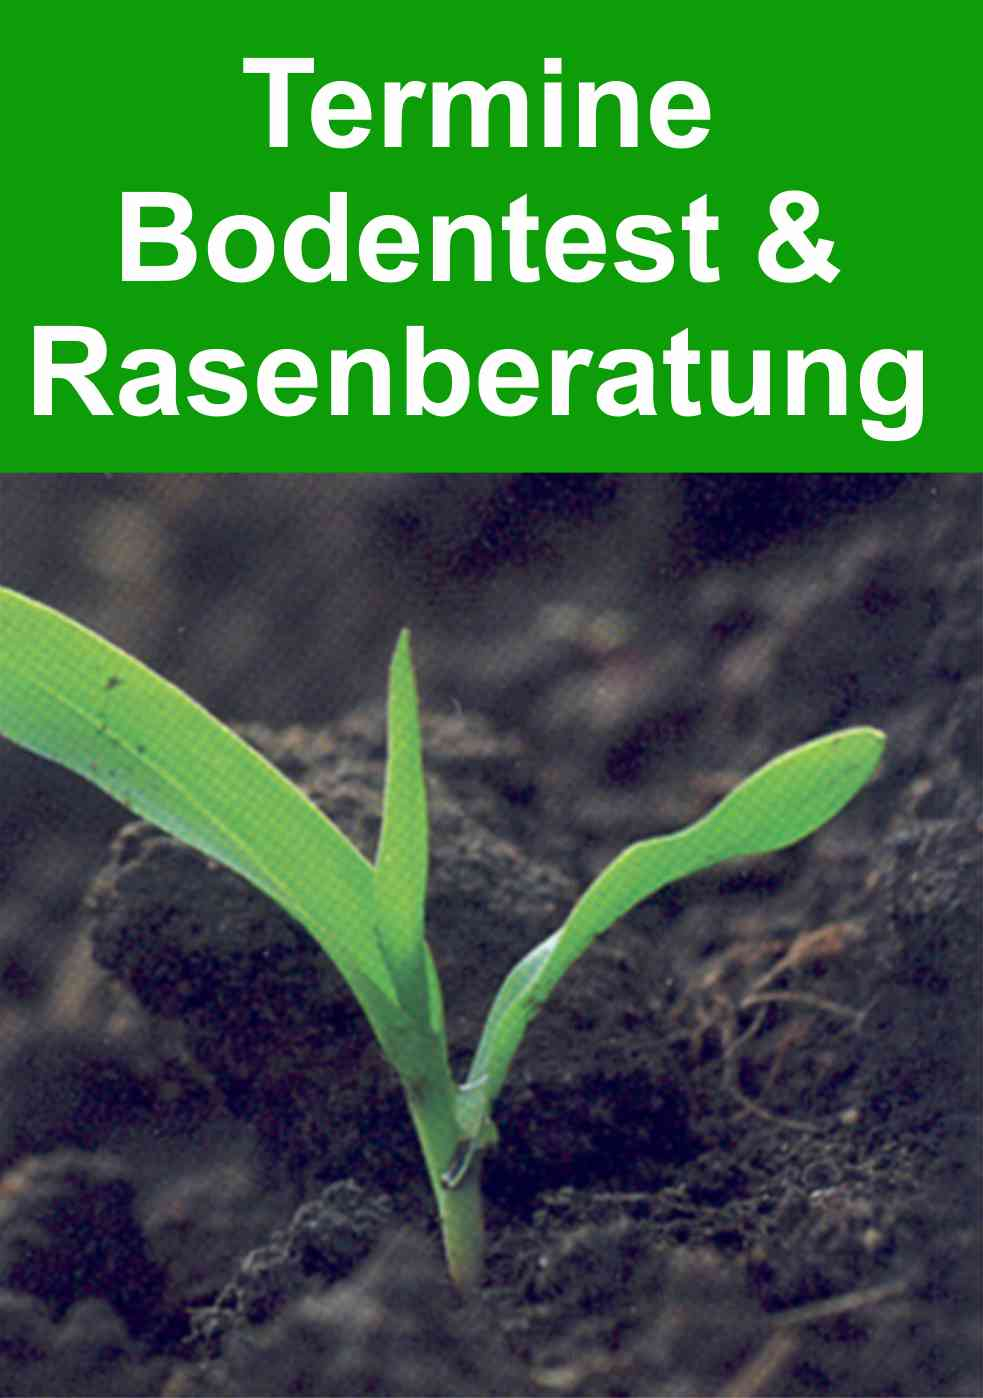 Bodentest_Logo.jpg